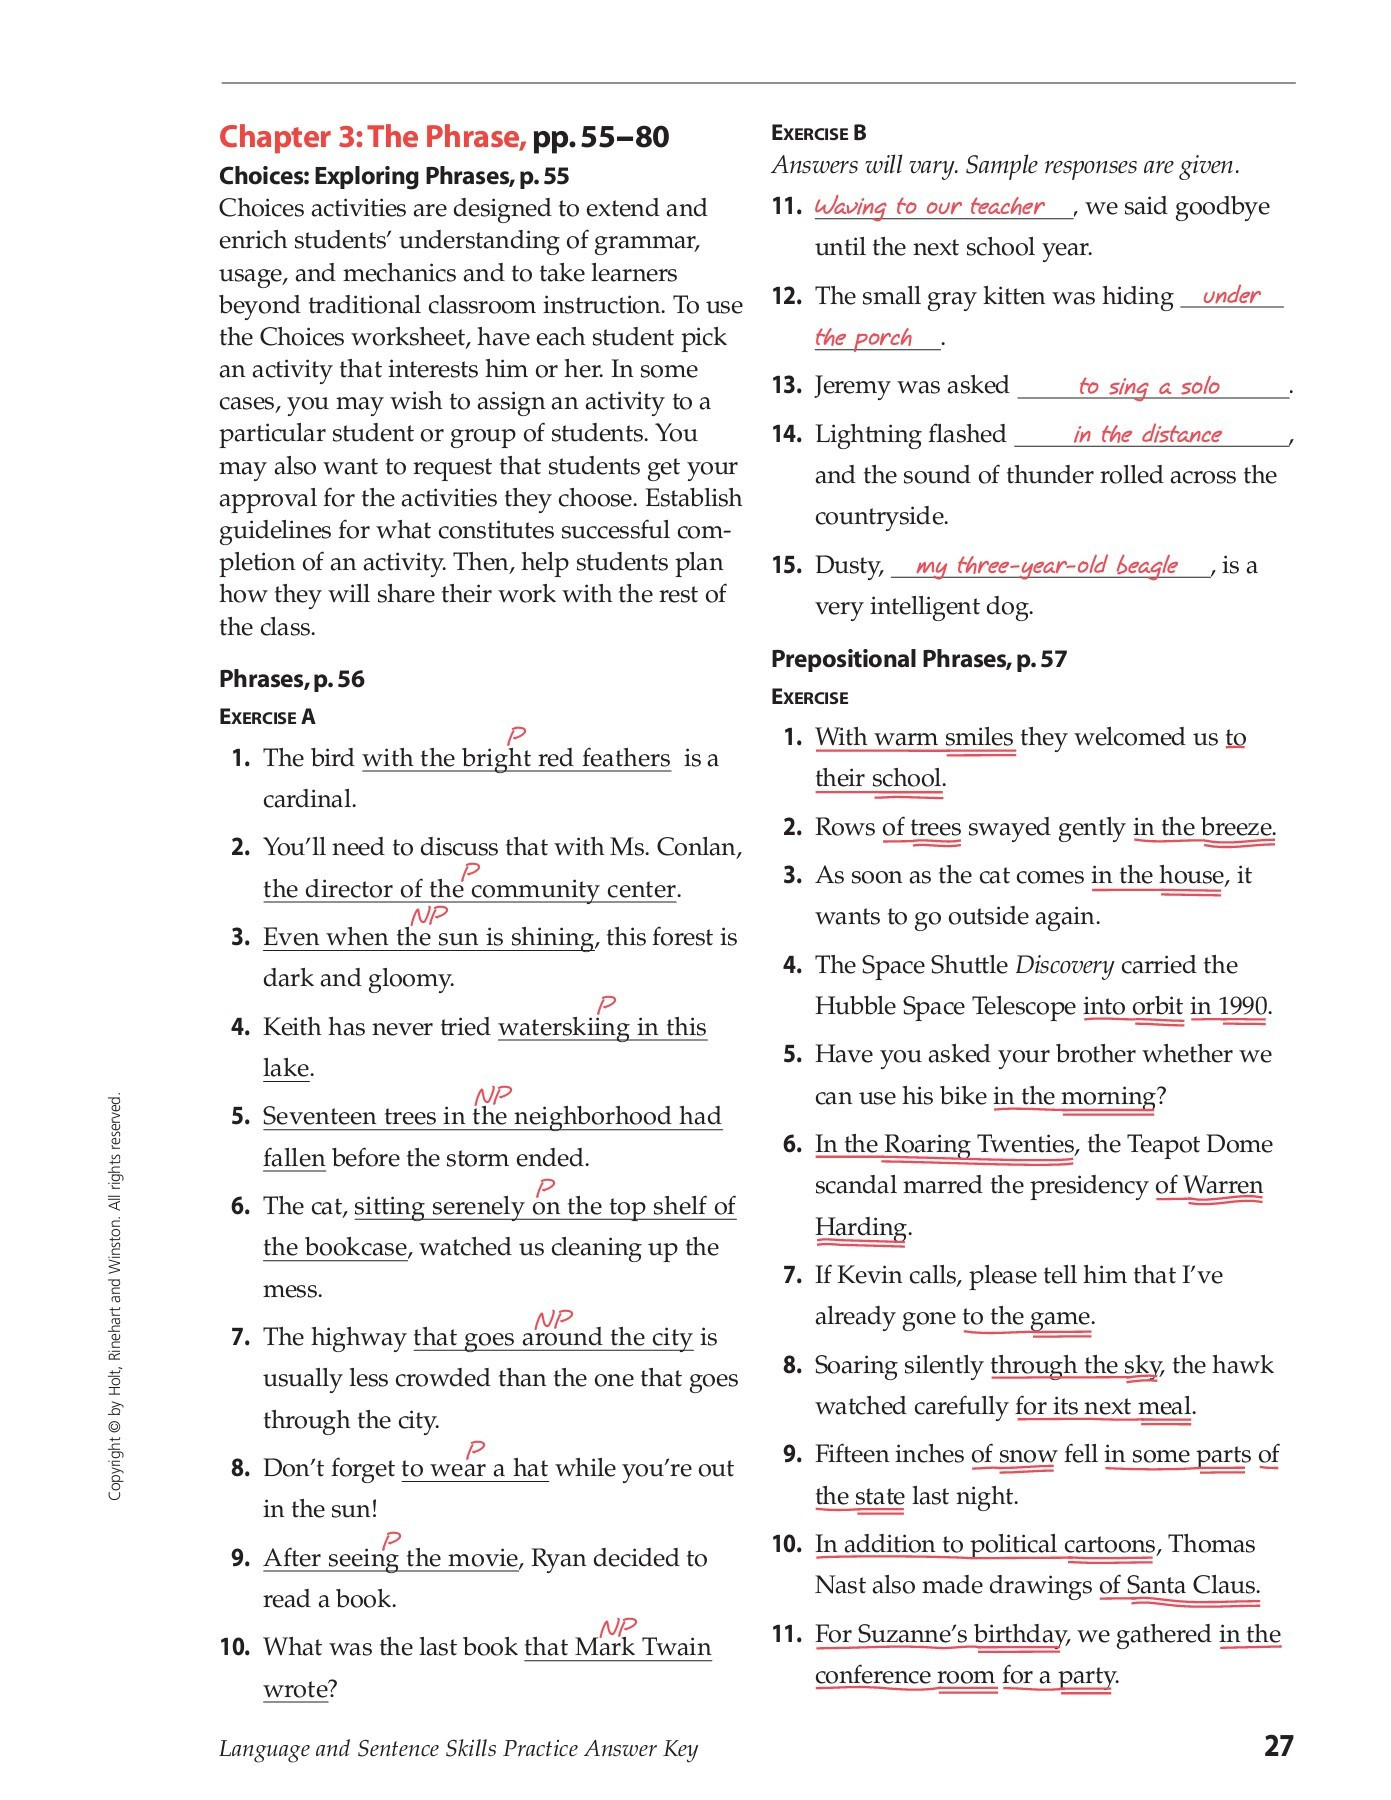 Prepositional Phrases Worksheet 6th Grade Chapter 3 the Phrase Pp 55 80 E B Hinsdale south High